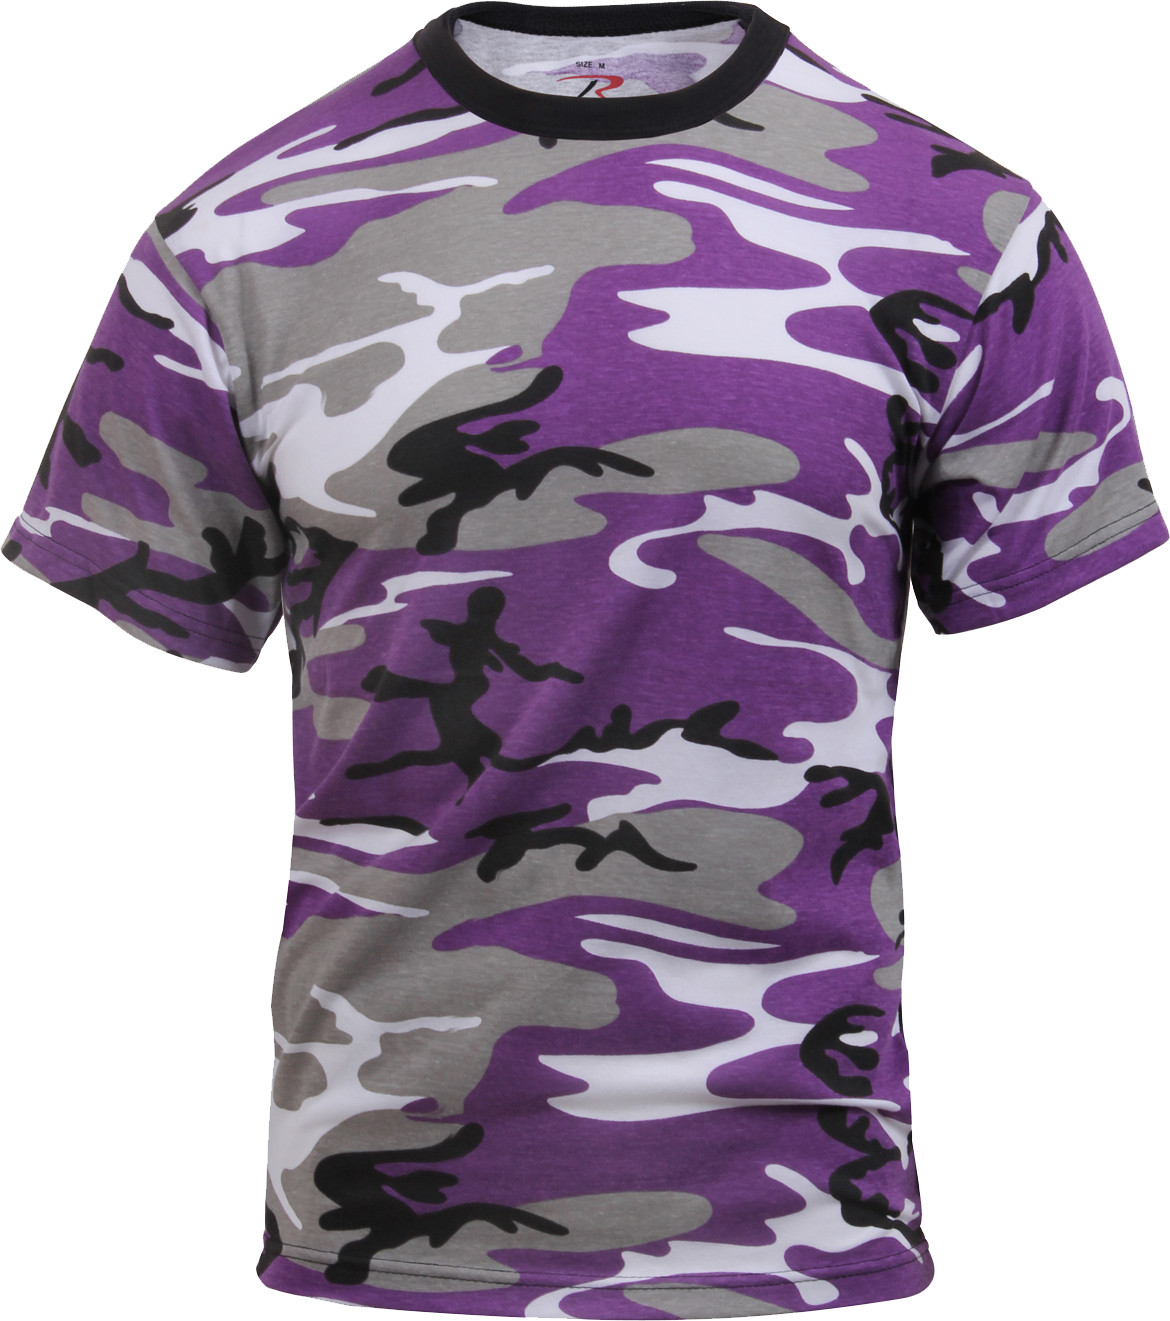 Purple Camouflage Military Short Sleeve T-Shirt d3191c06b